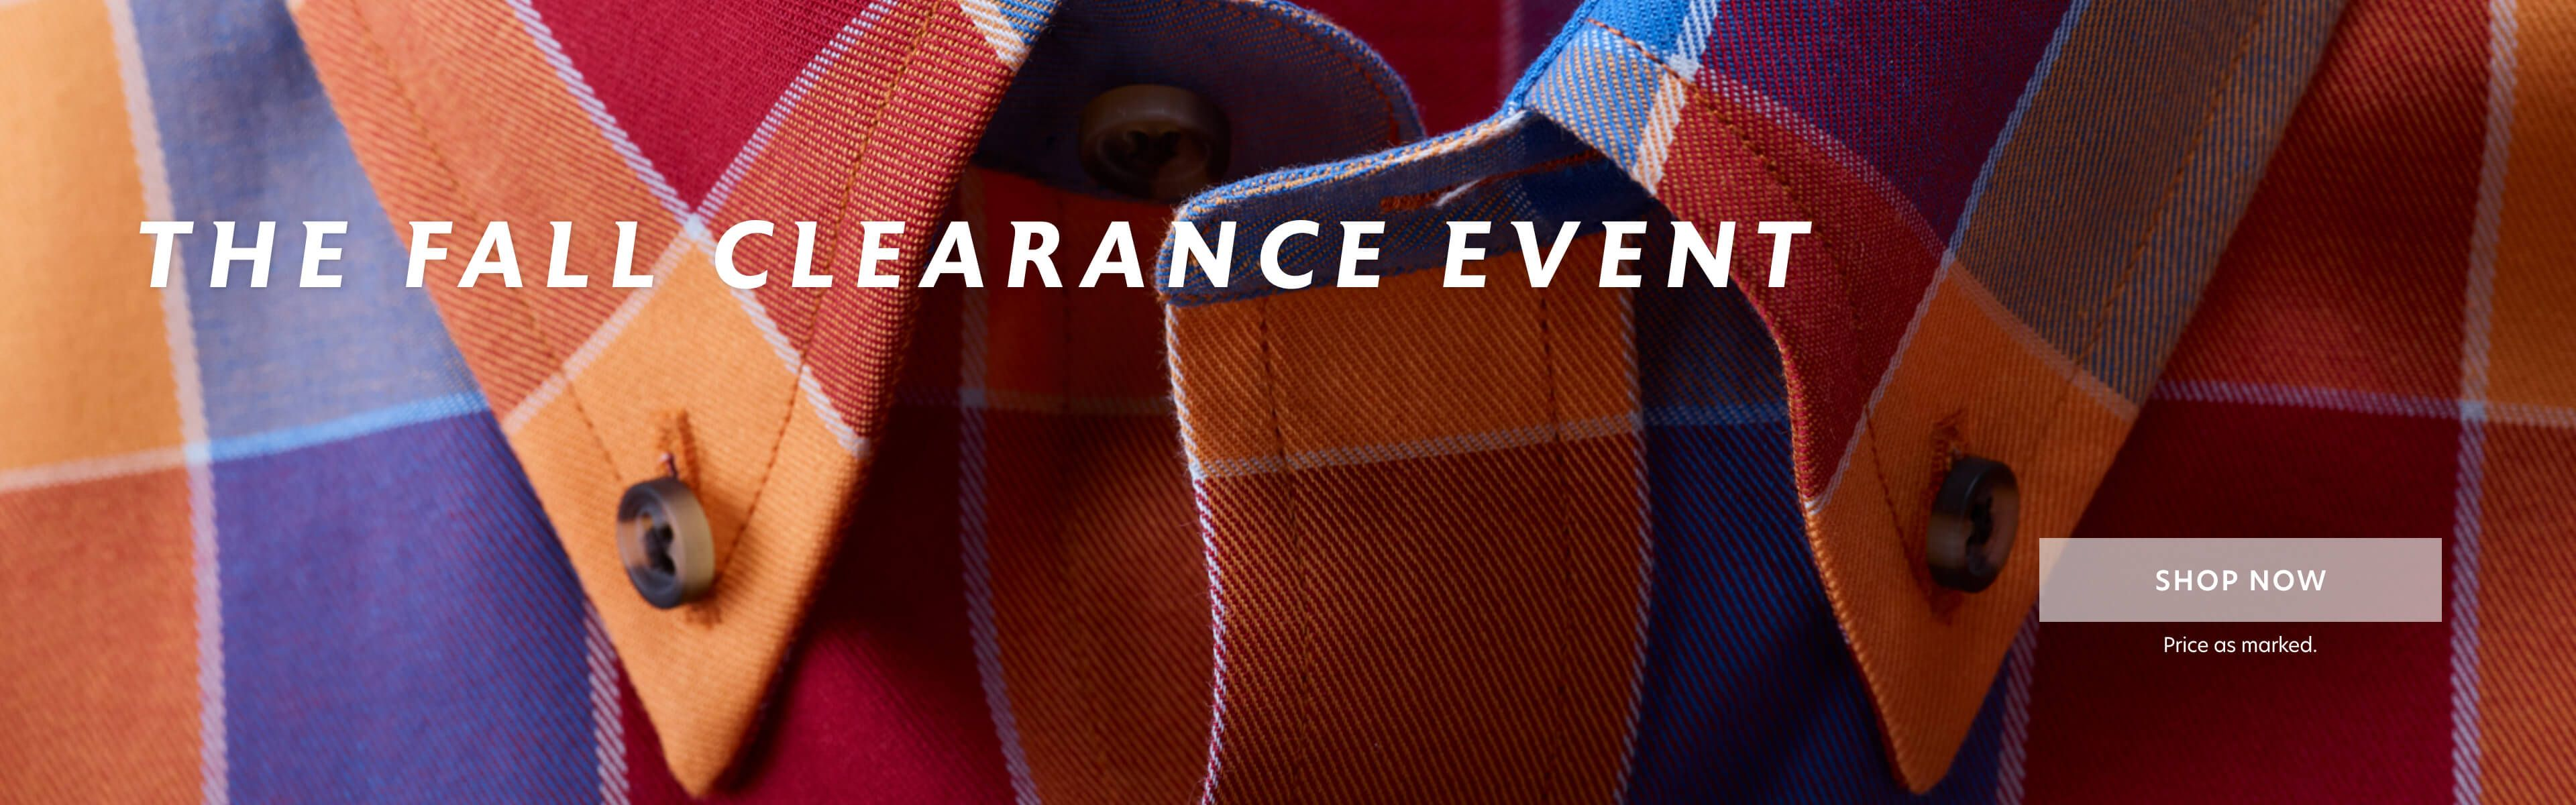 Fall Clearance:$28 shirts and more.